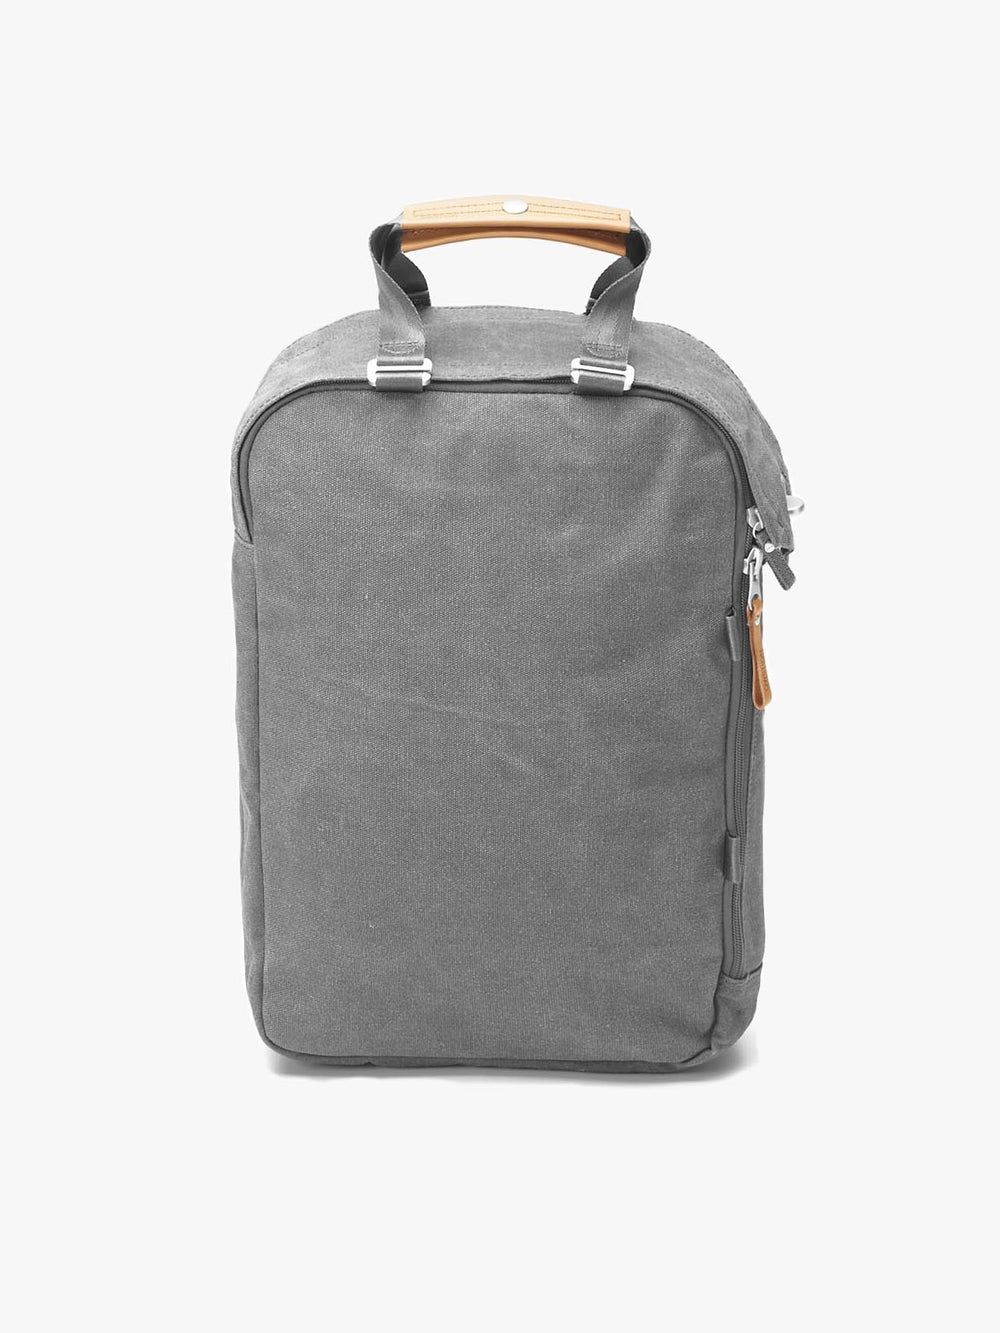 Qwstion Daypack in a Washed Grey version with leather handles